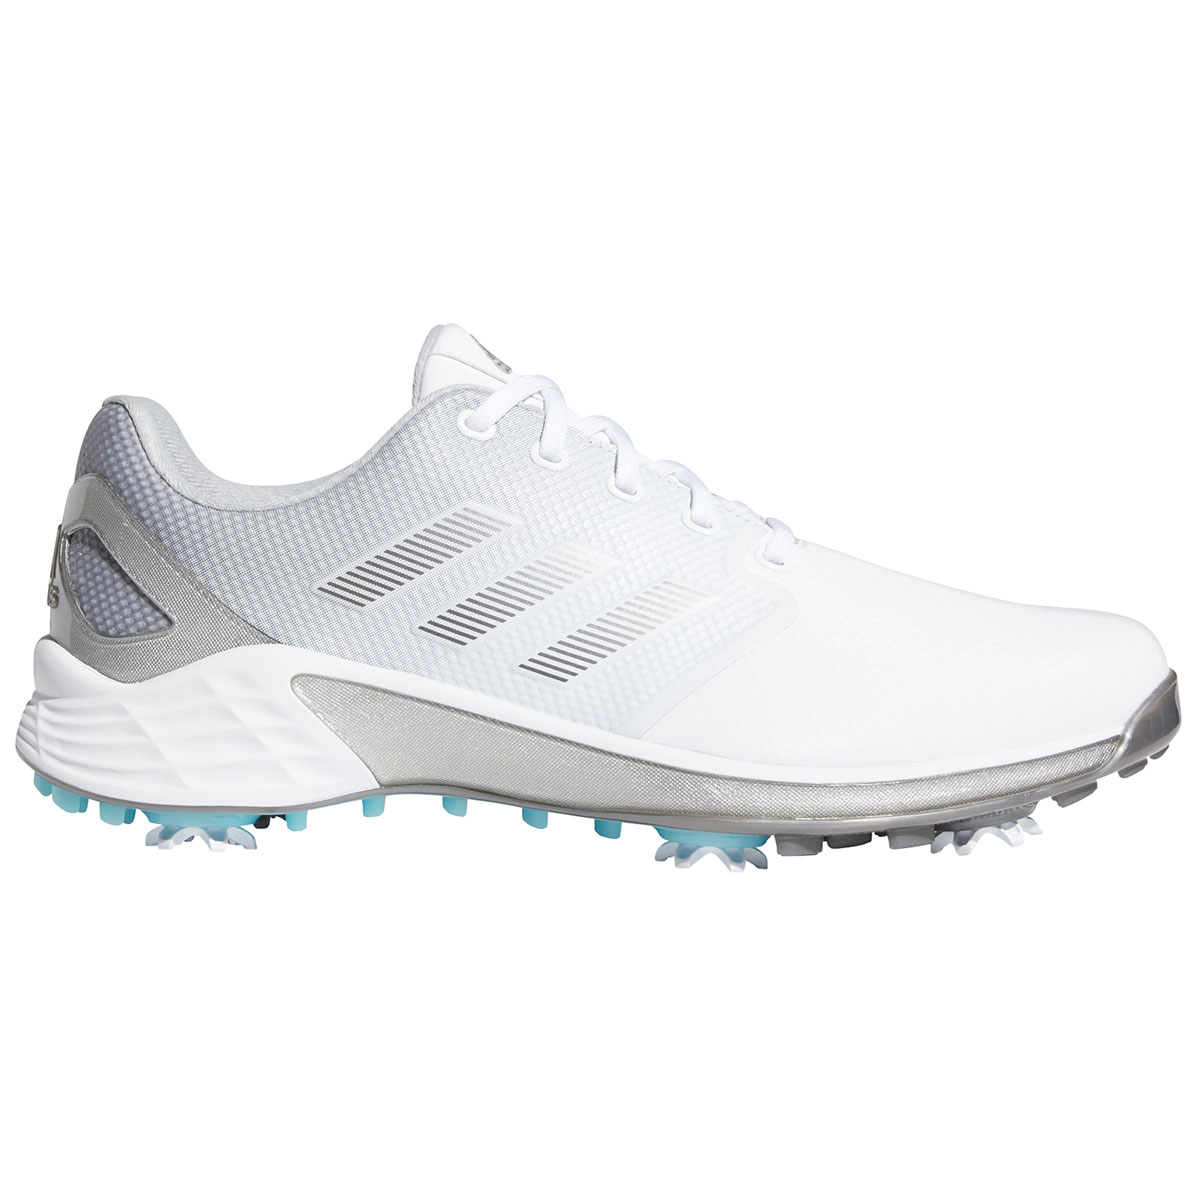 adidas Golf ZG21 Shoes from american golf